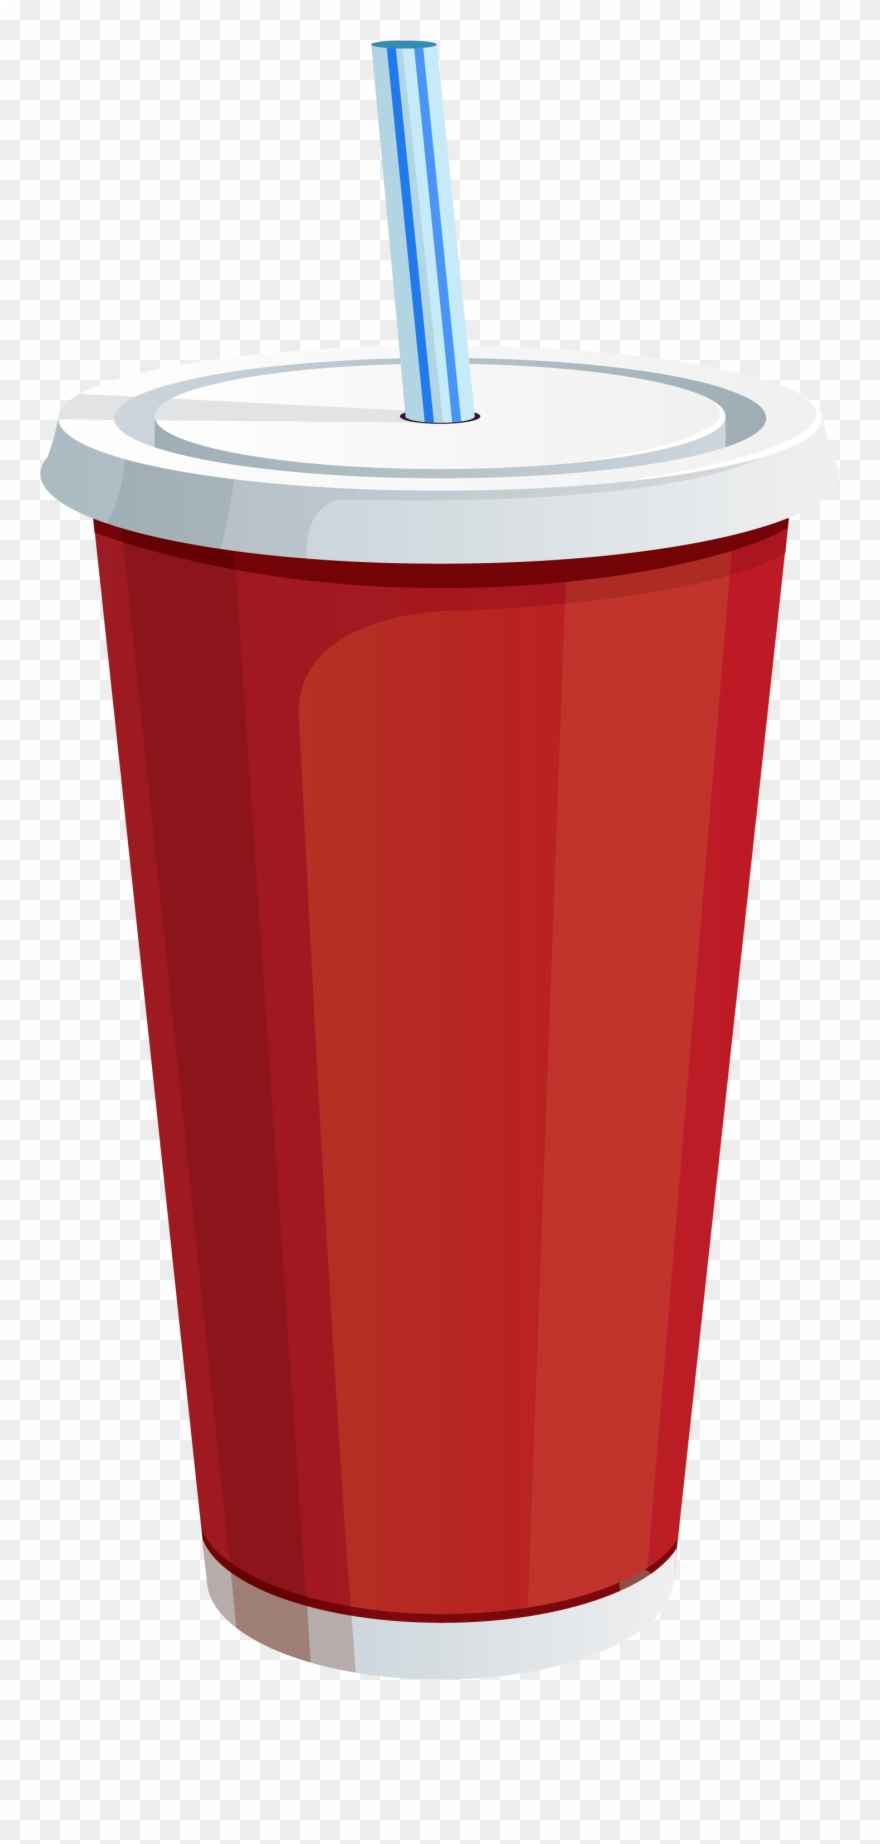 Banner Freeuse Download Soda Cup Clipart.